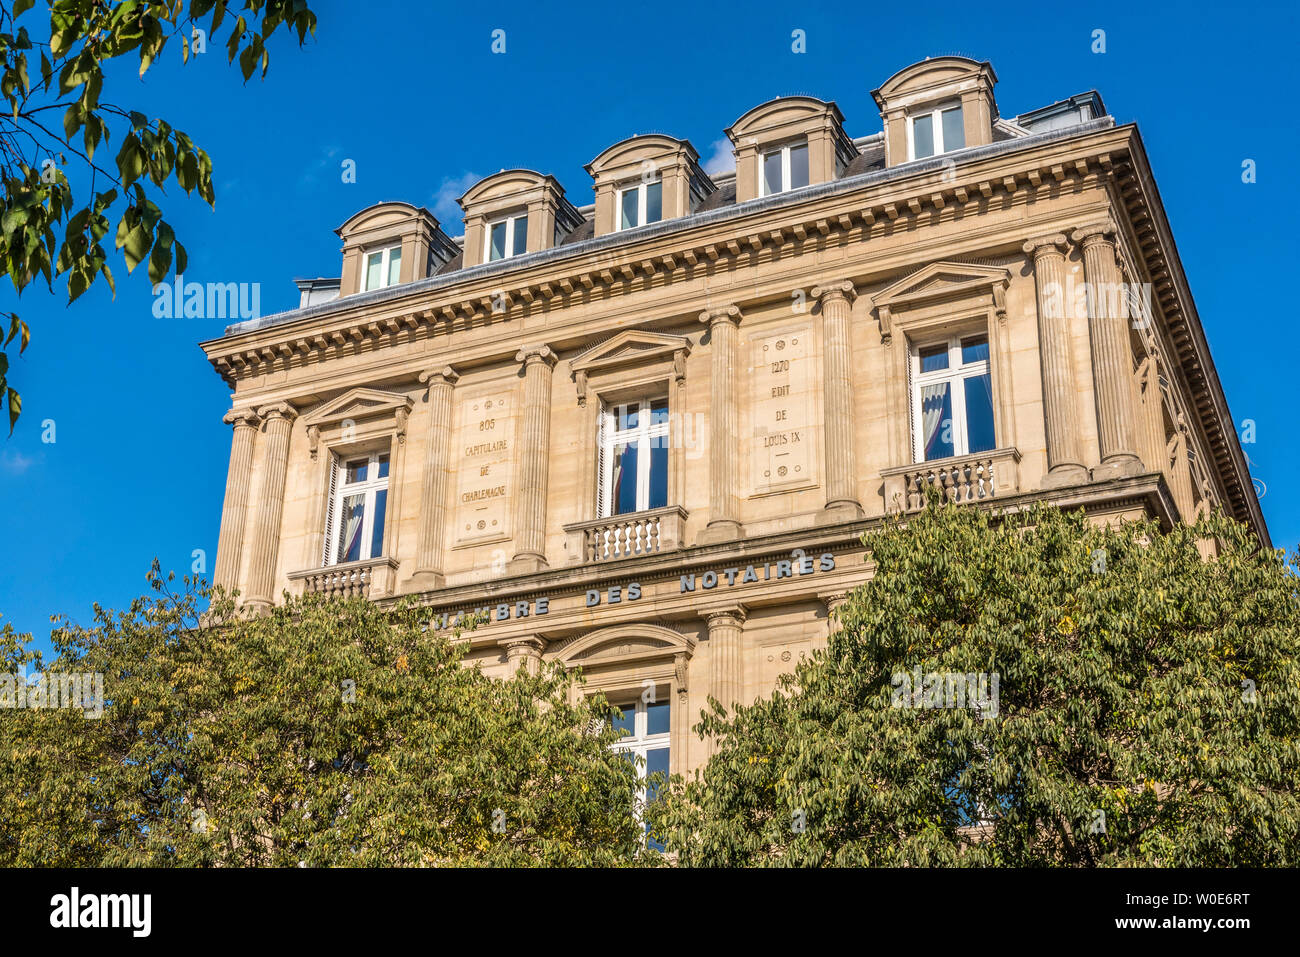 Notary France High Resolution Stock Photography And Images Alamy